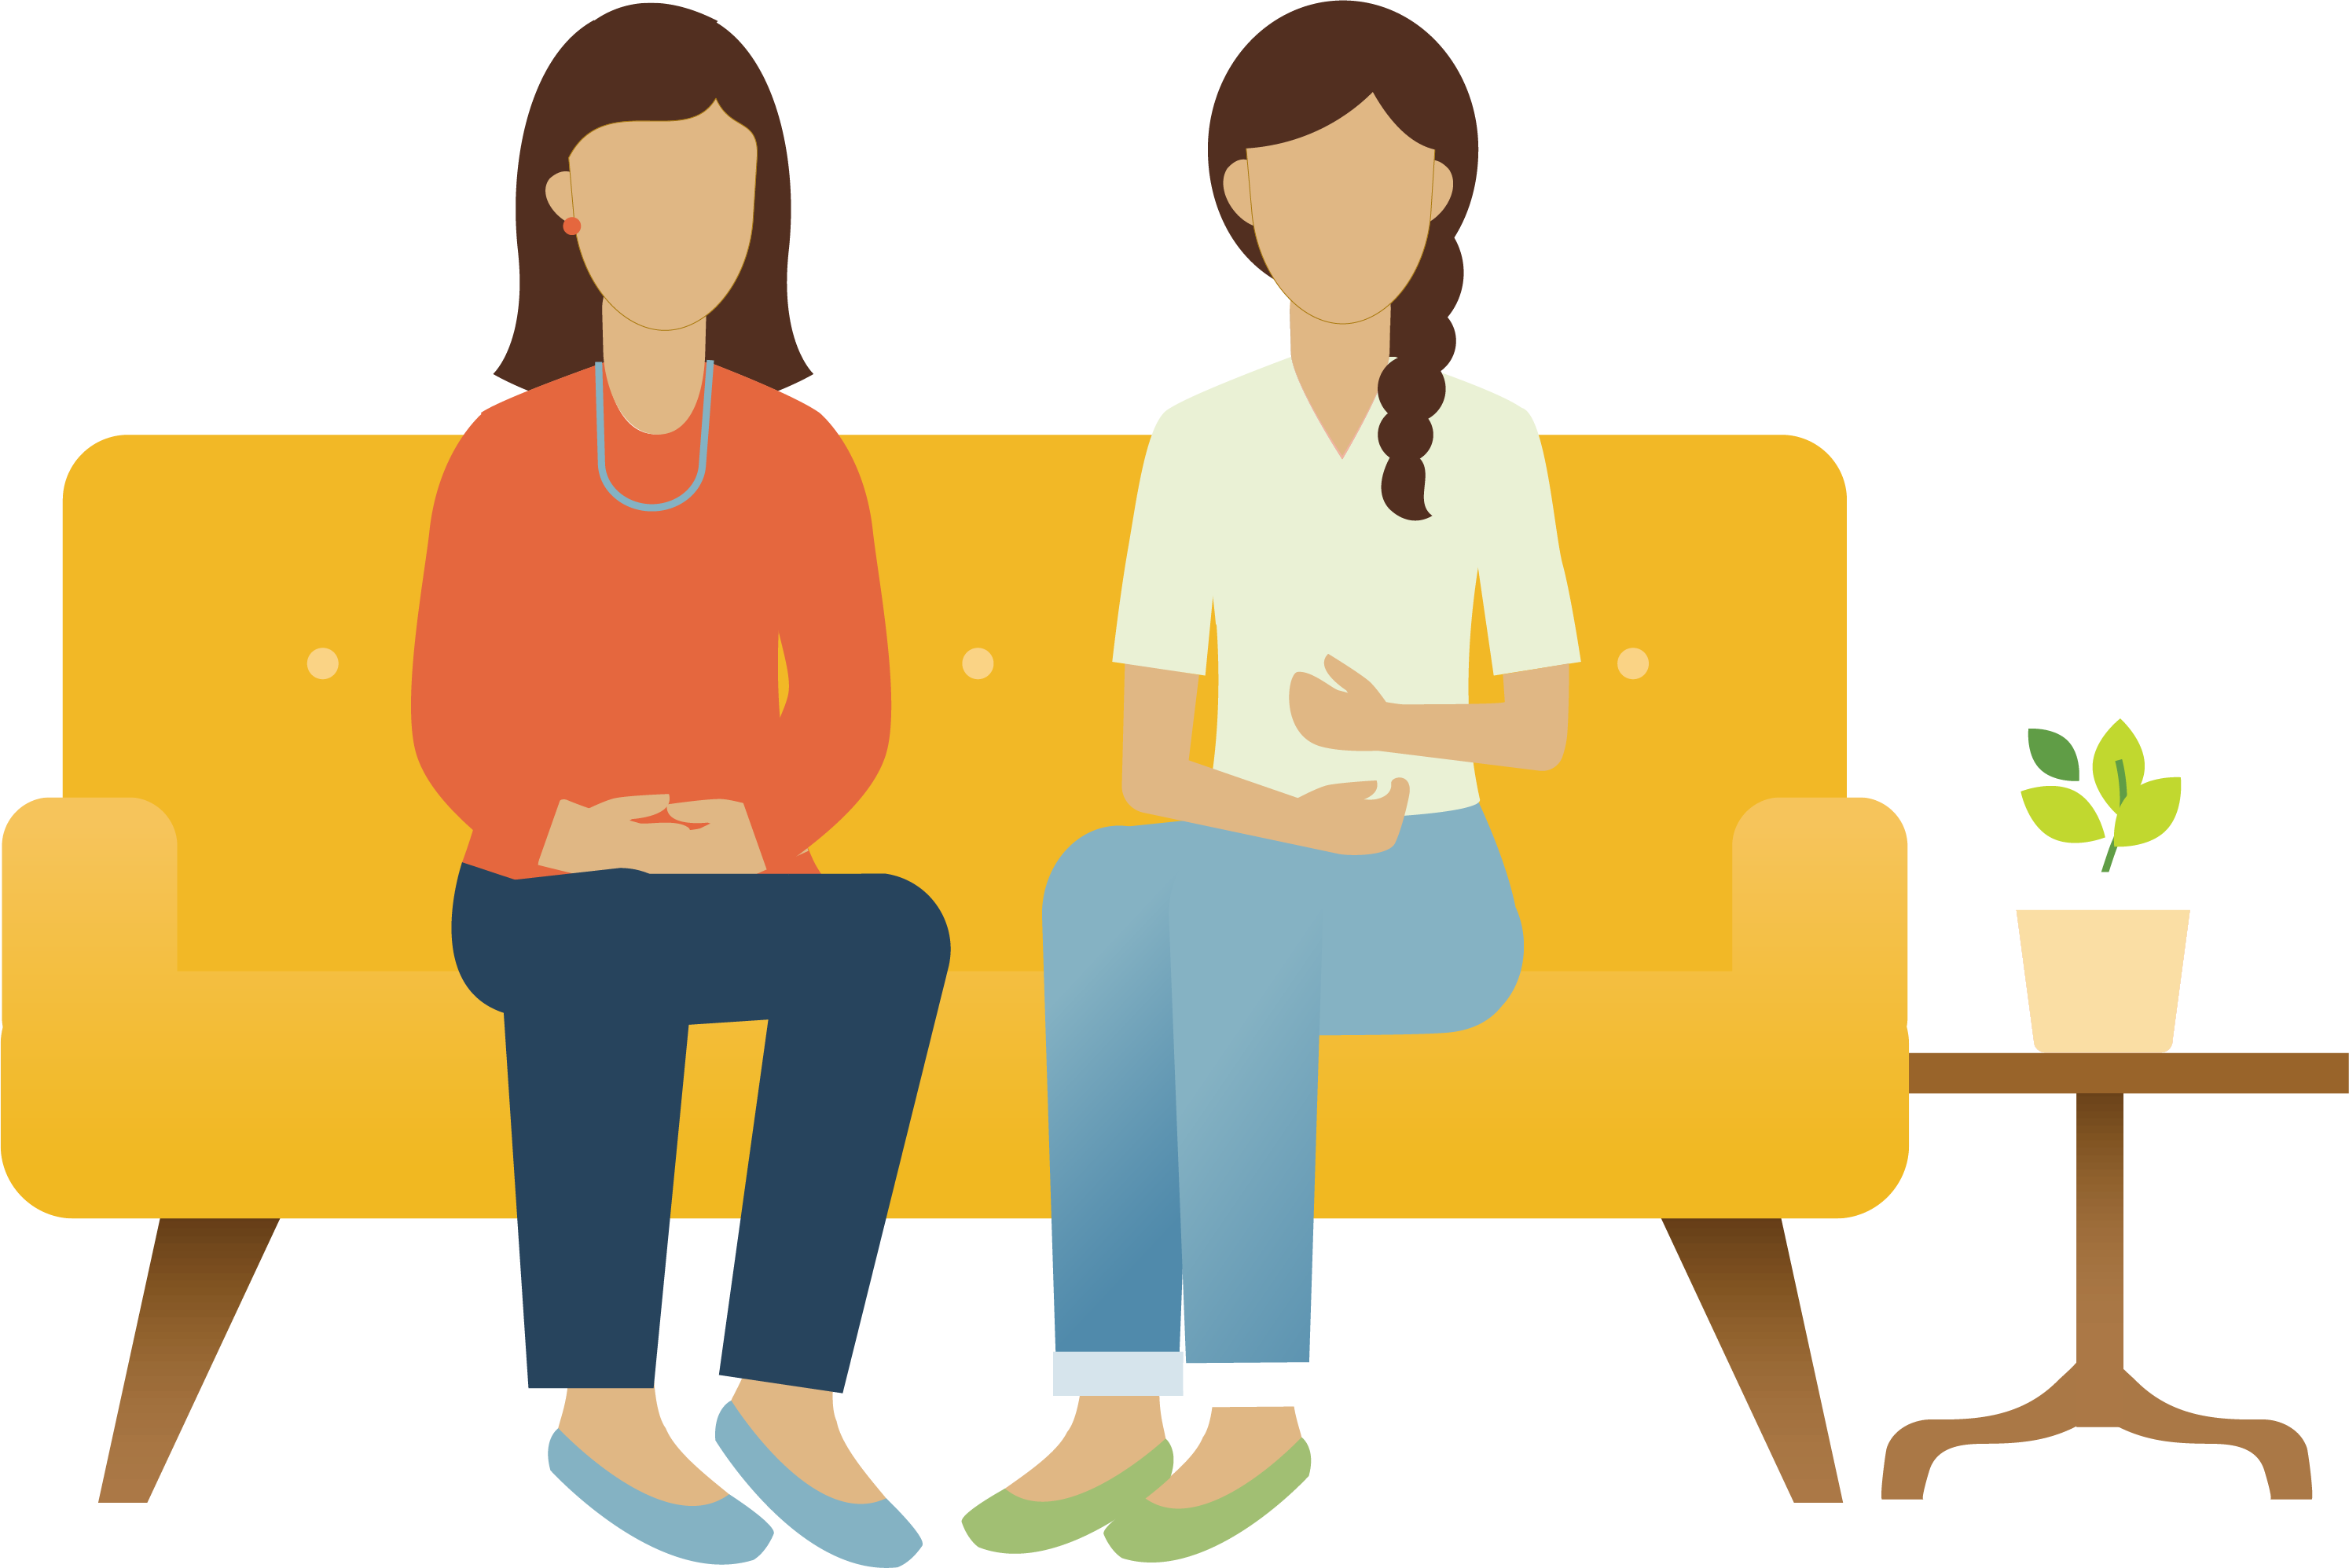 Illustration of two women sitting on a couch